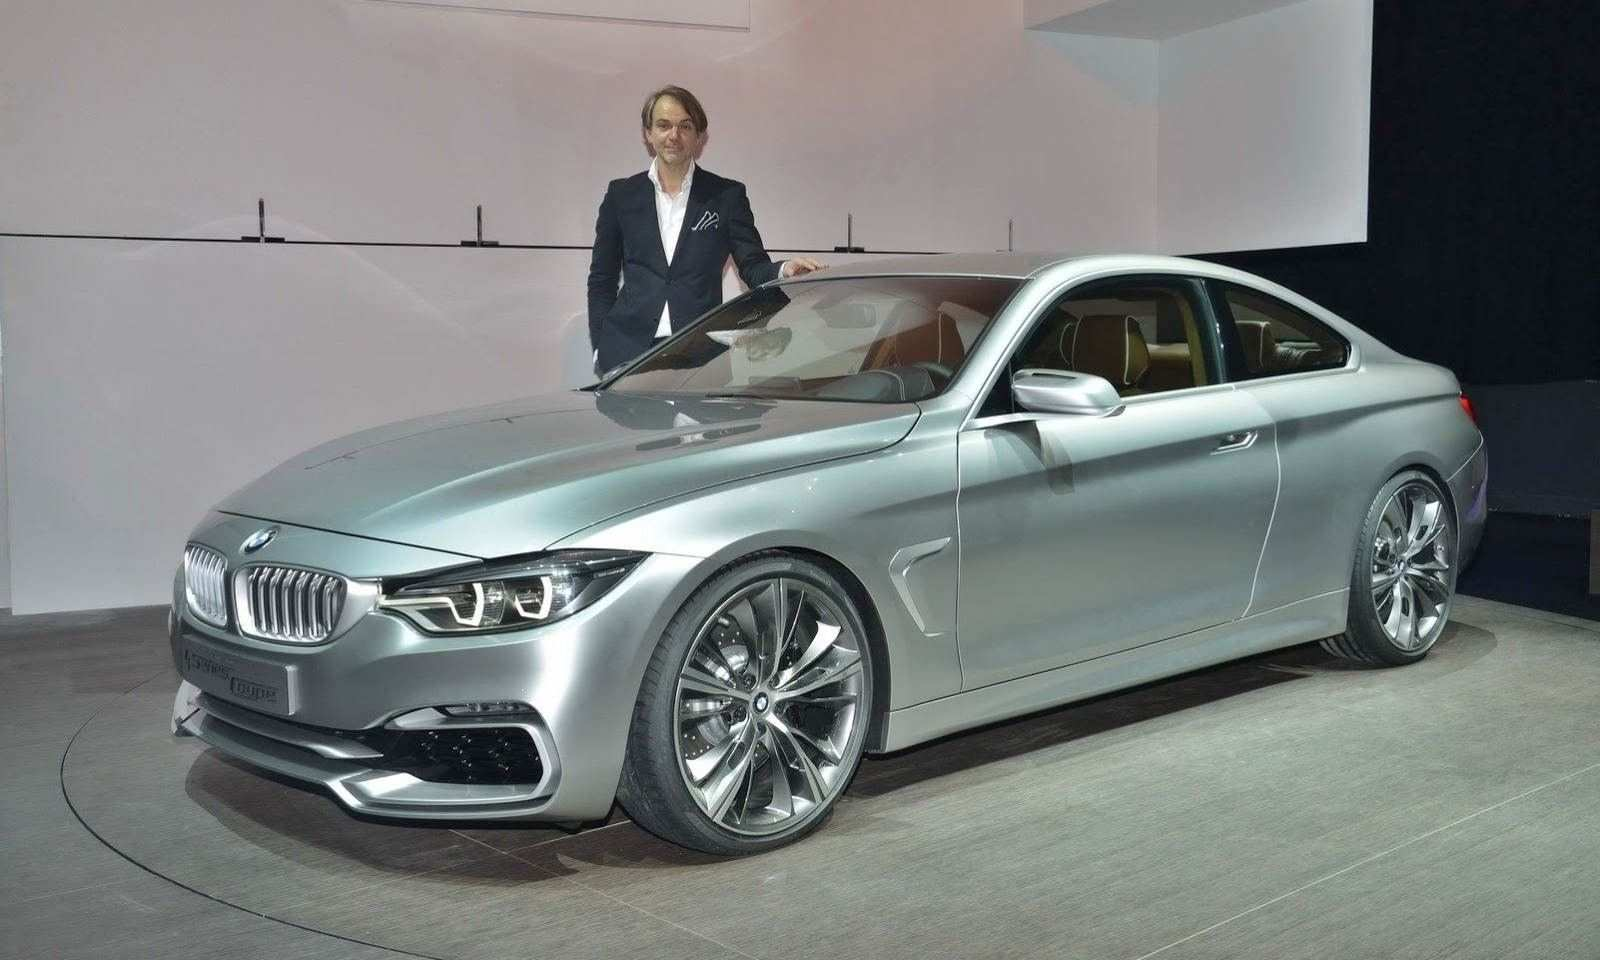 21 All New 2020 BMW 5 Series Images with 2020 BMW 5 Series